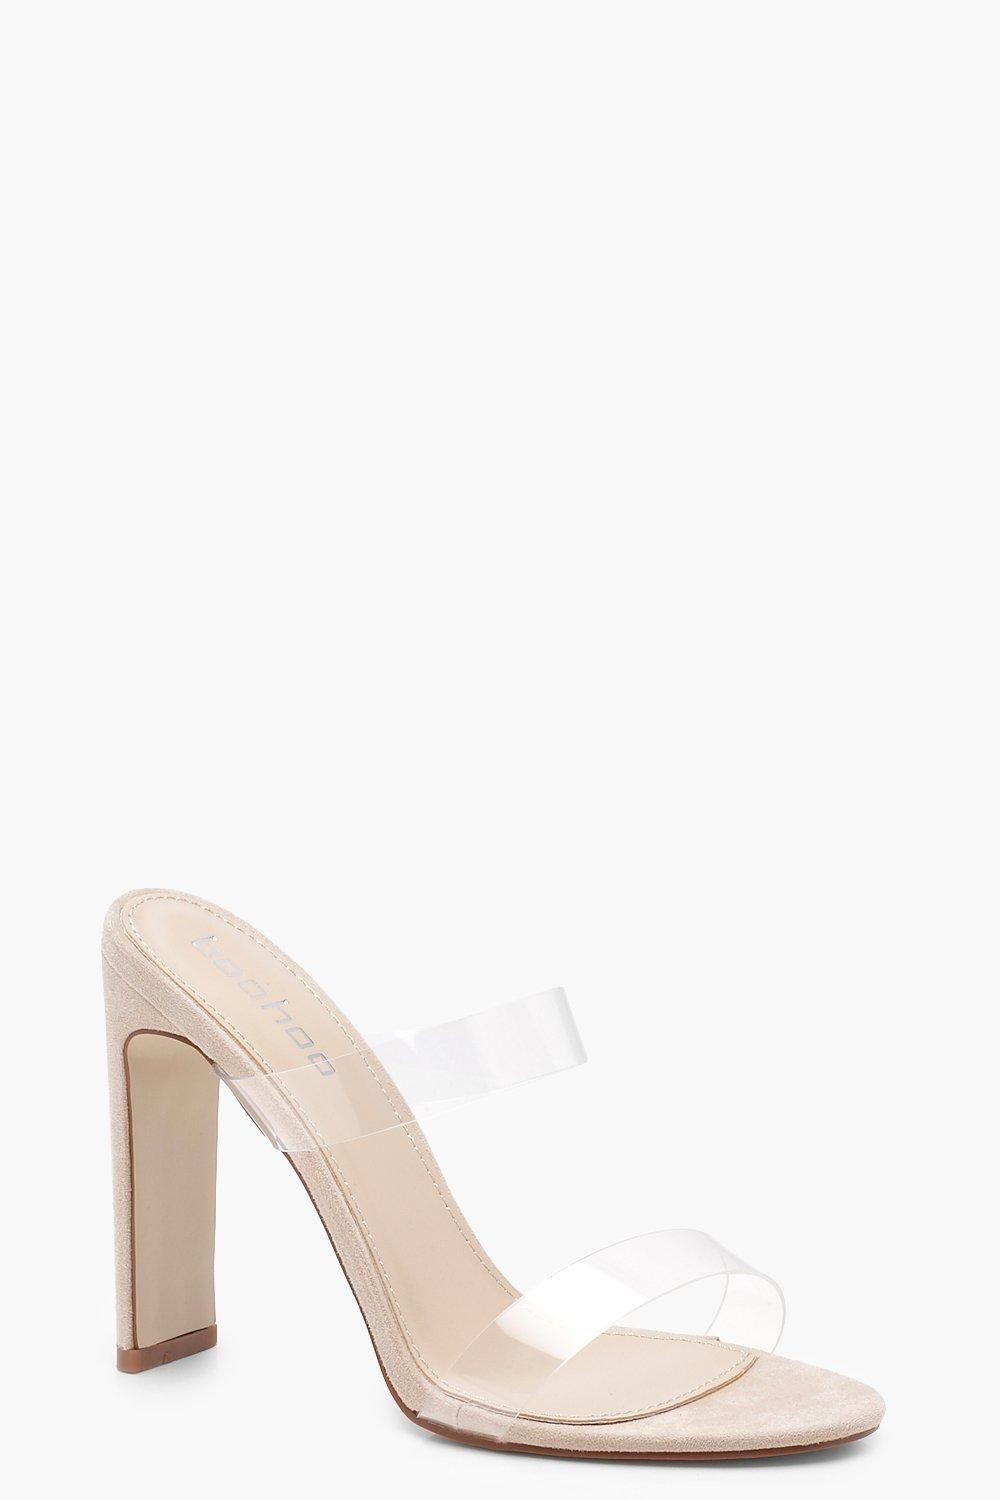 c117af6b67d Double Clear Band Mule Heels | Shoes | Heeled mules, Heels, Clear heels